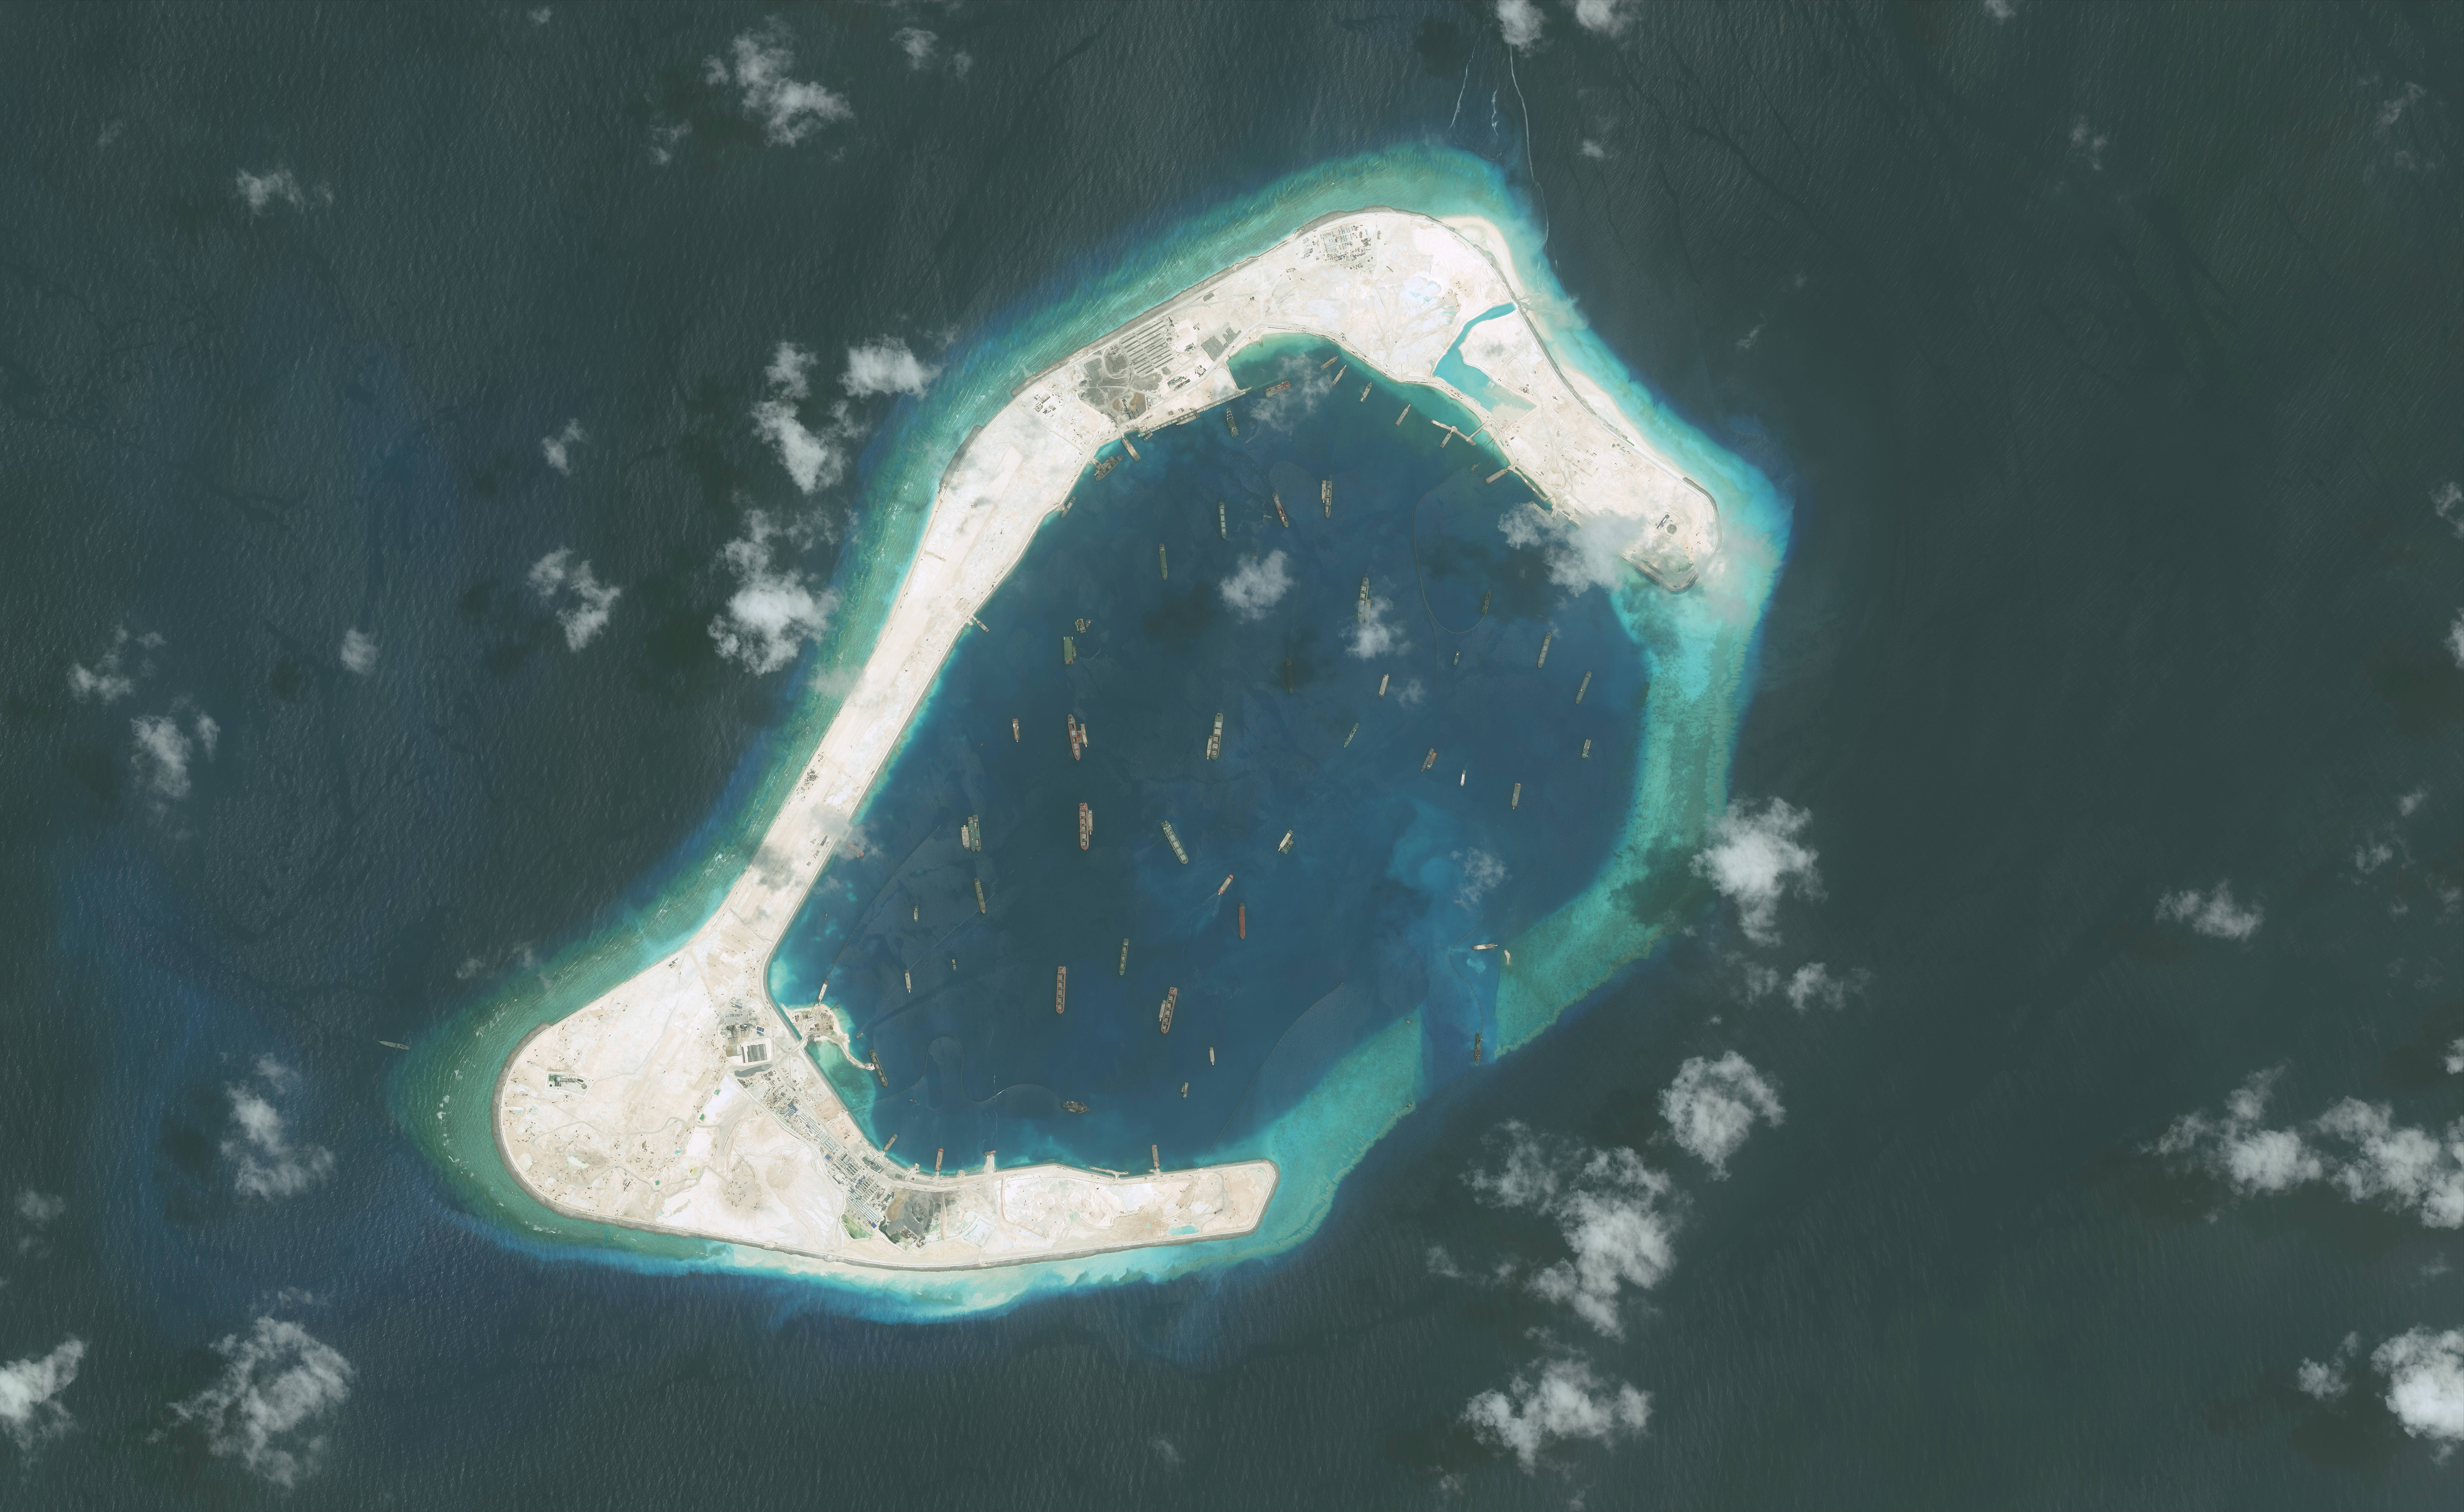 DigitalGlobe imagery of the Subi Reef in the South China Sea, a part of the Spratly Islands group, Sept. 1, 2015